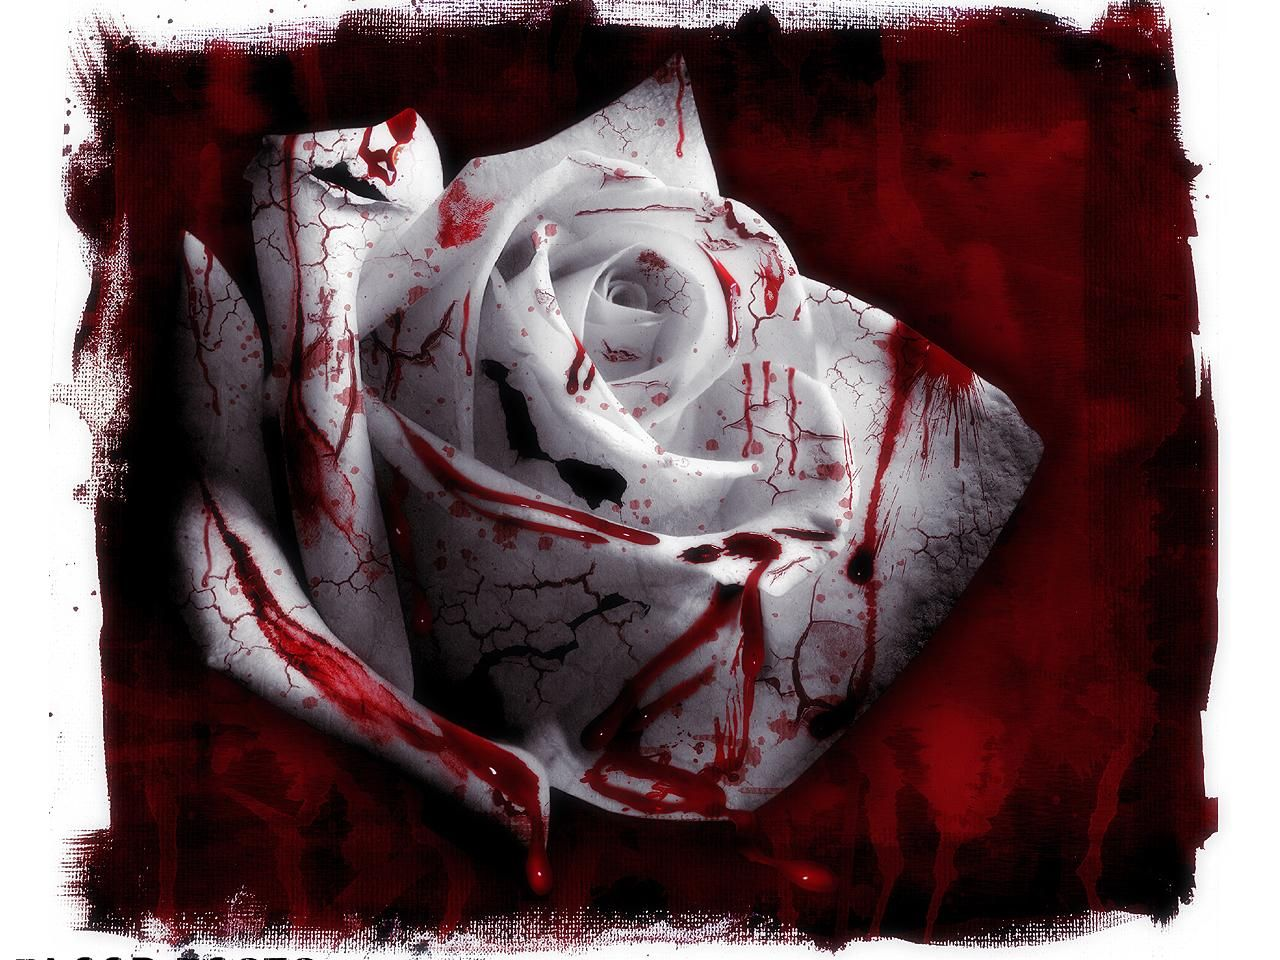 Rose covered with blood